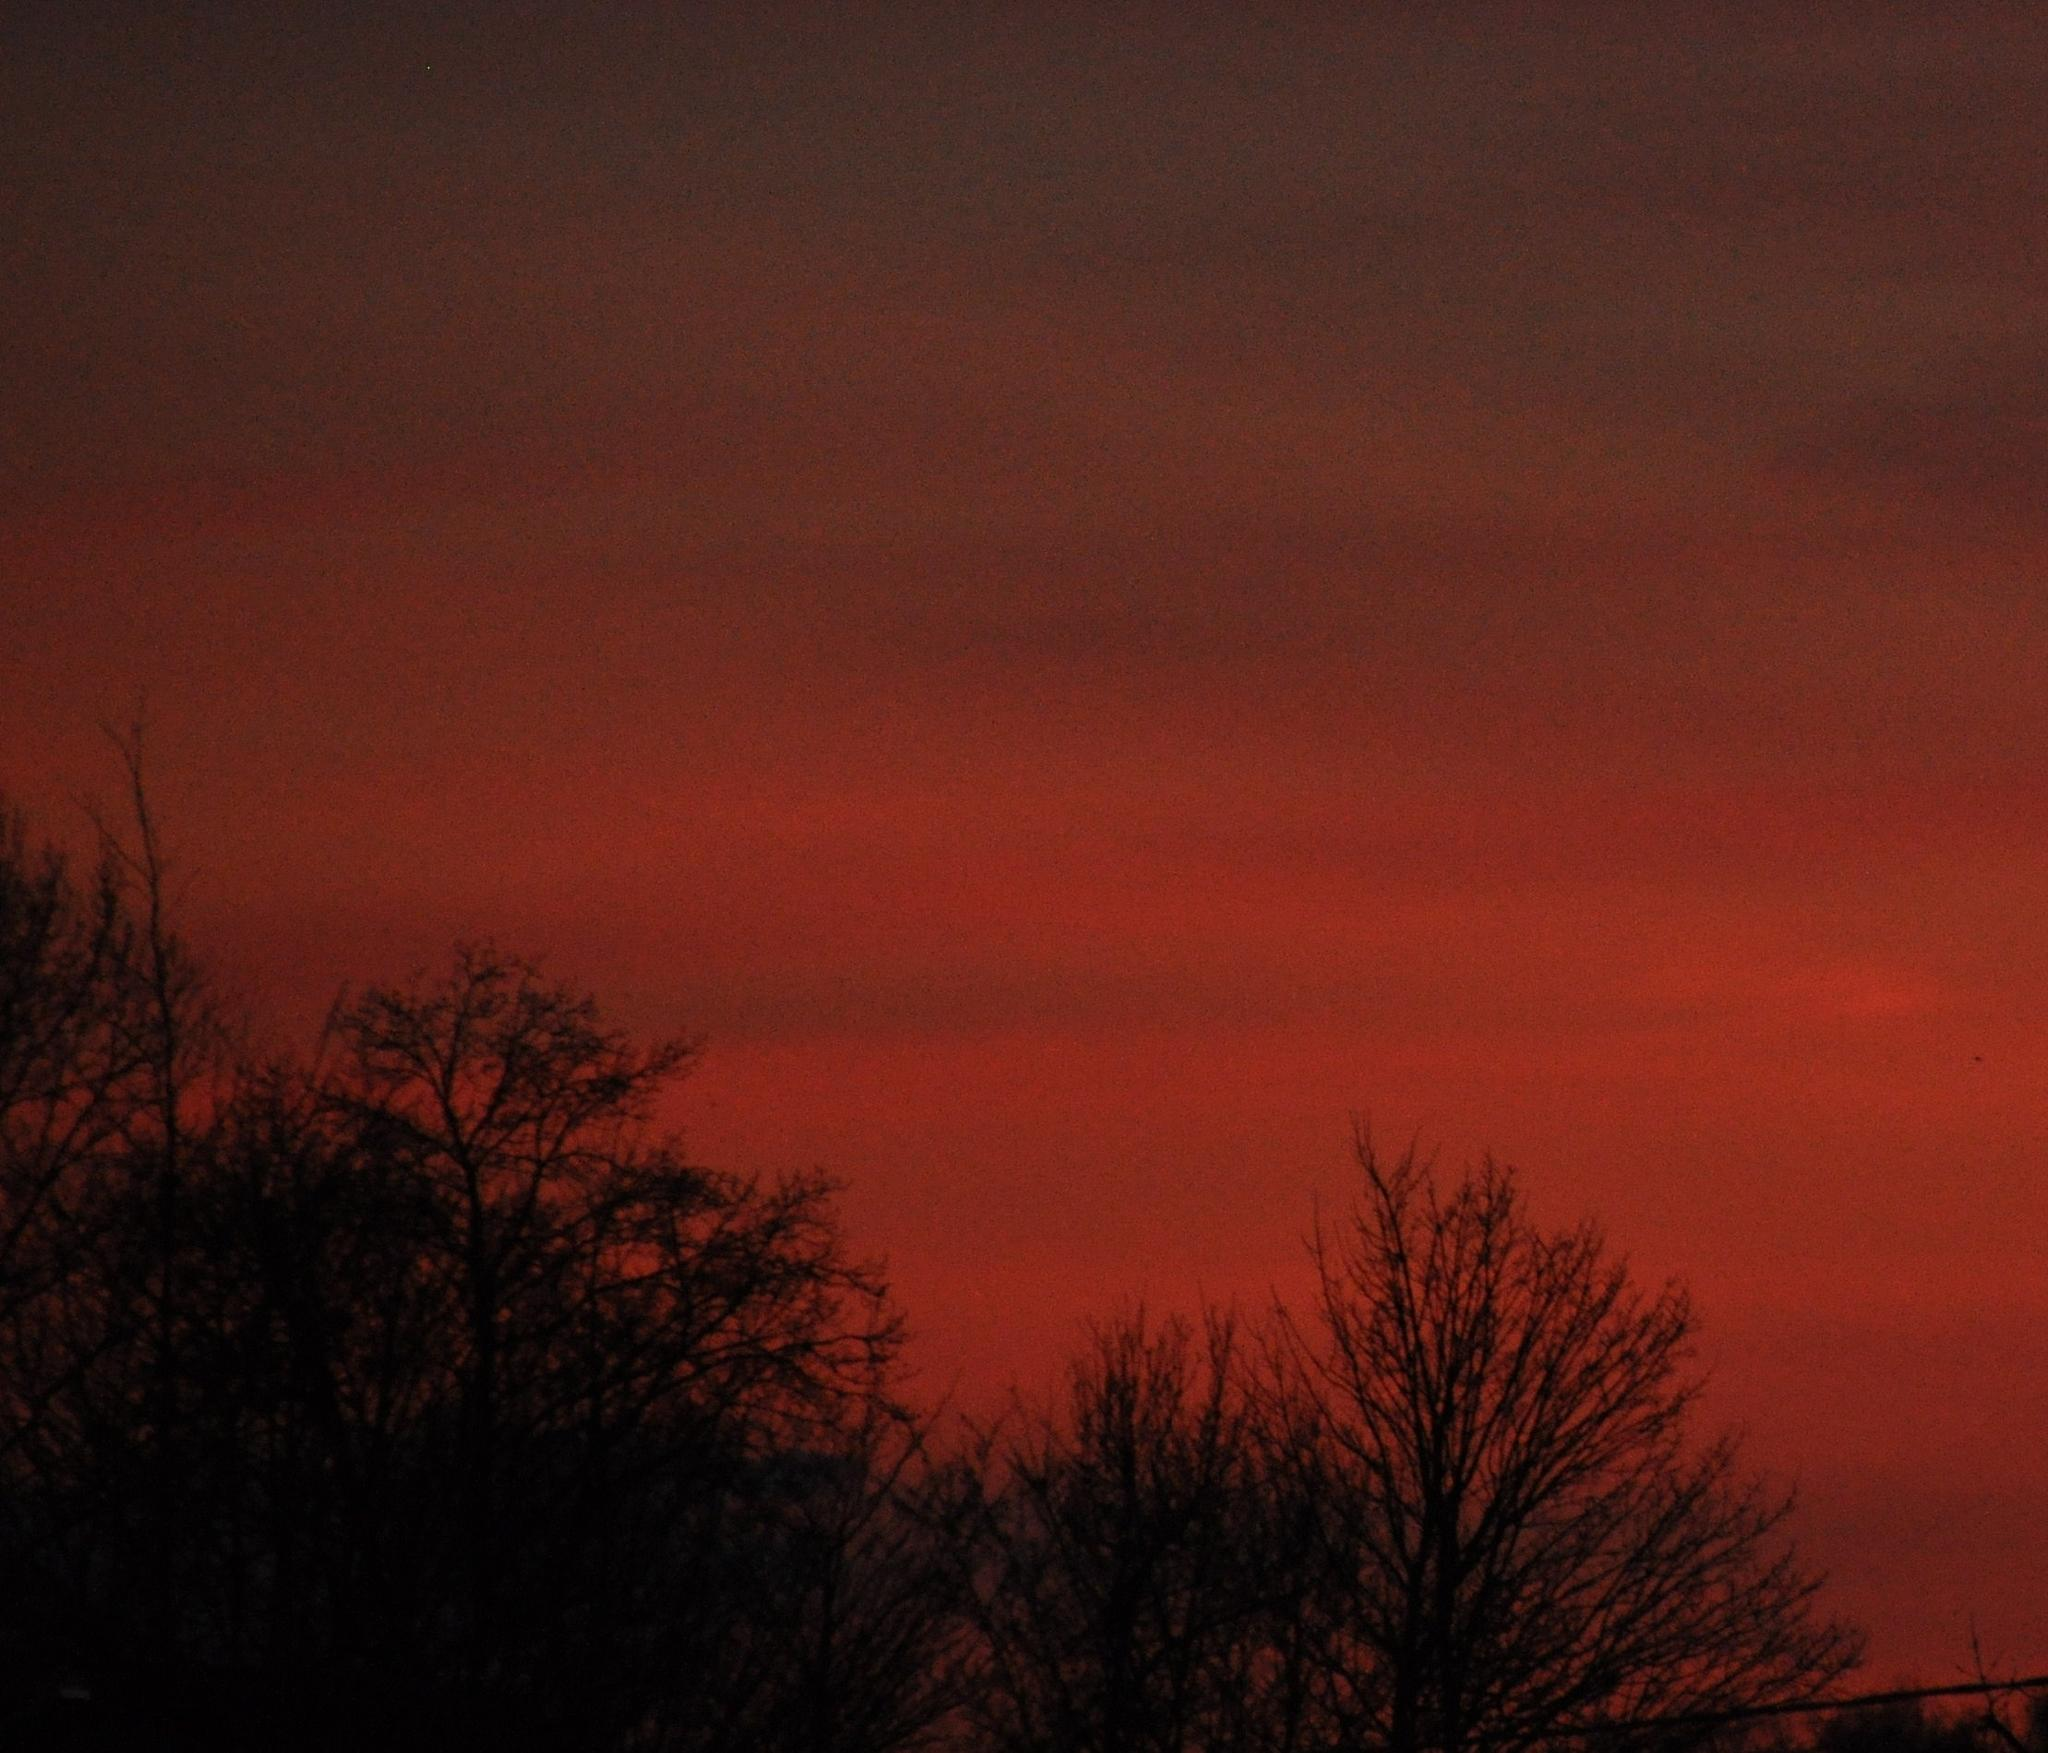 pfft red evening, taken this evening by Marc Verlee